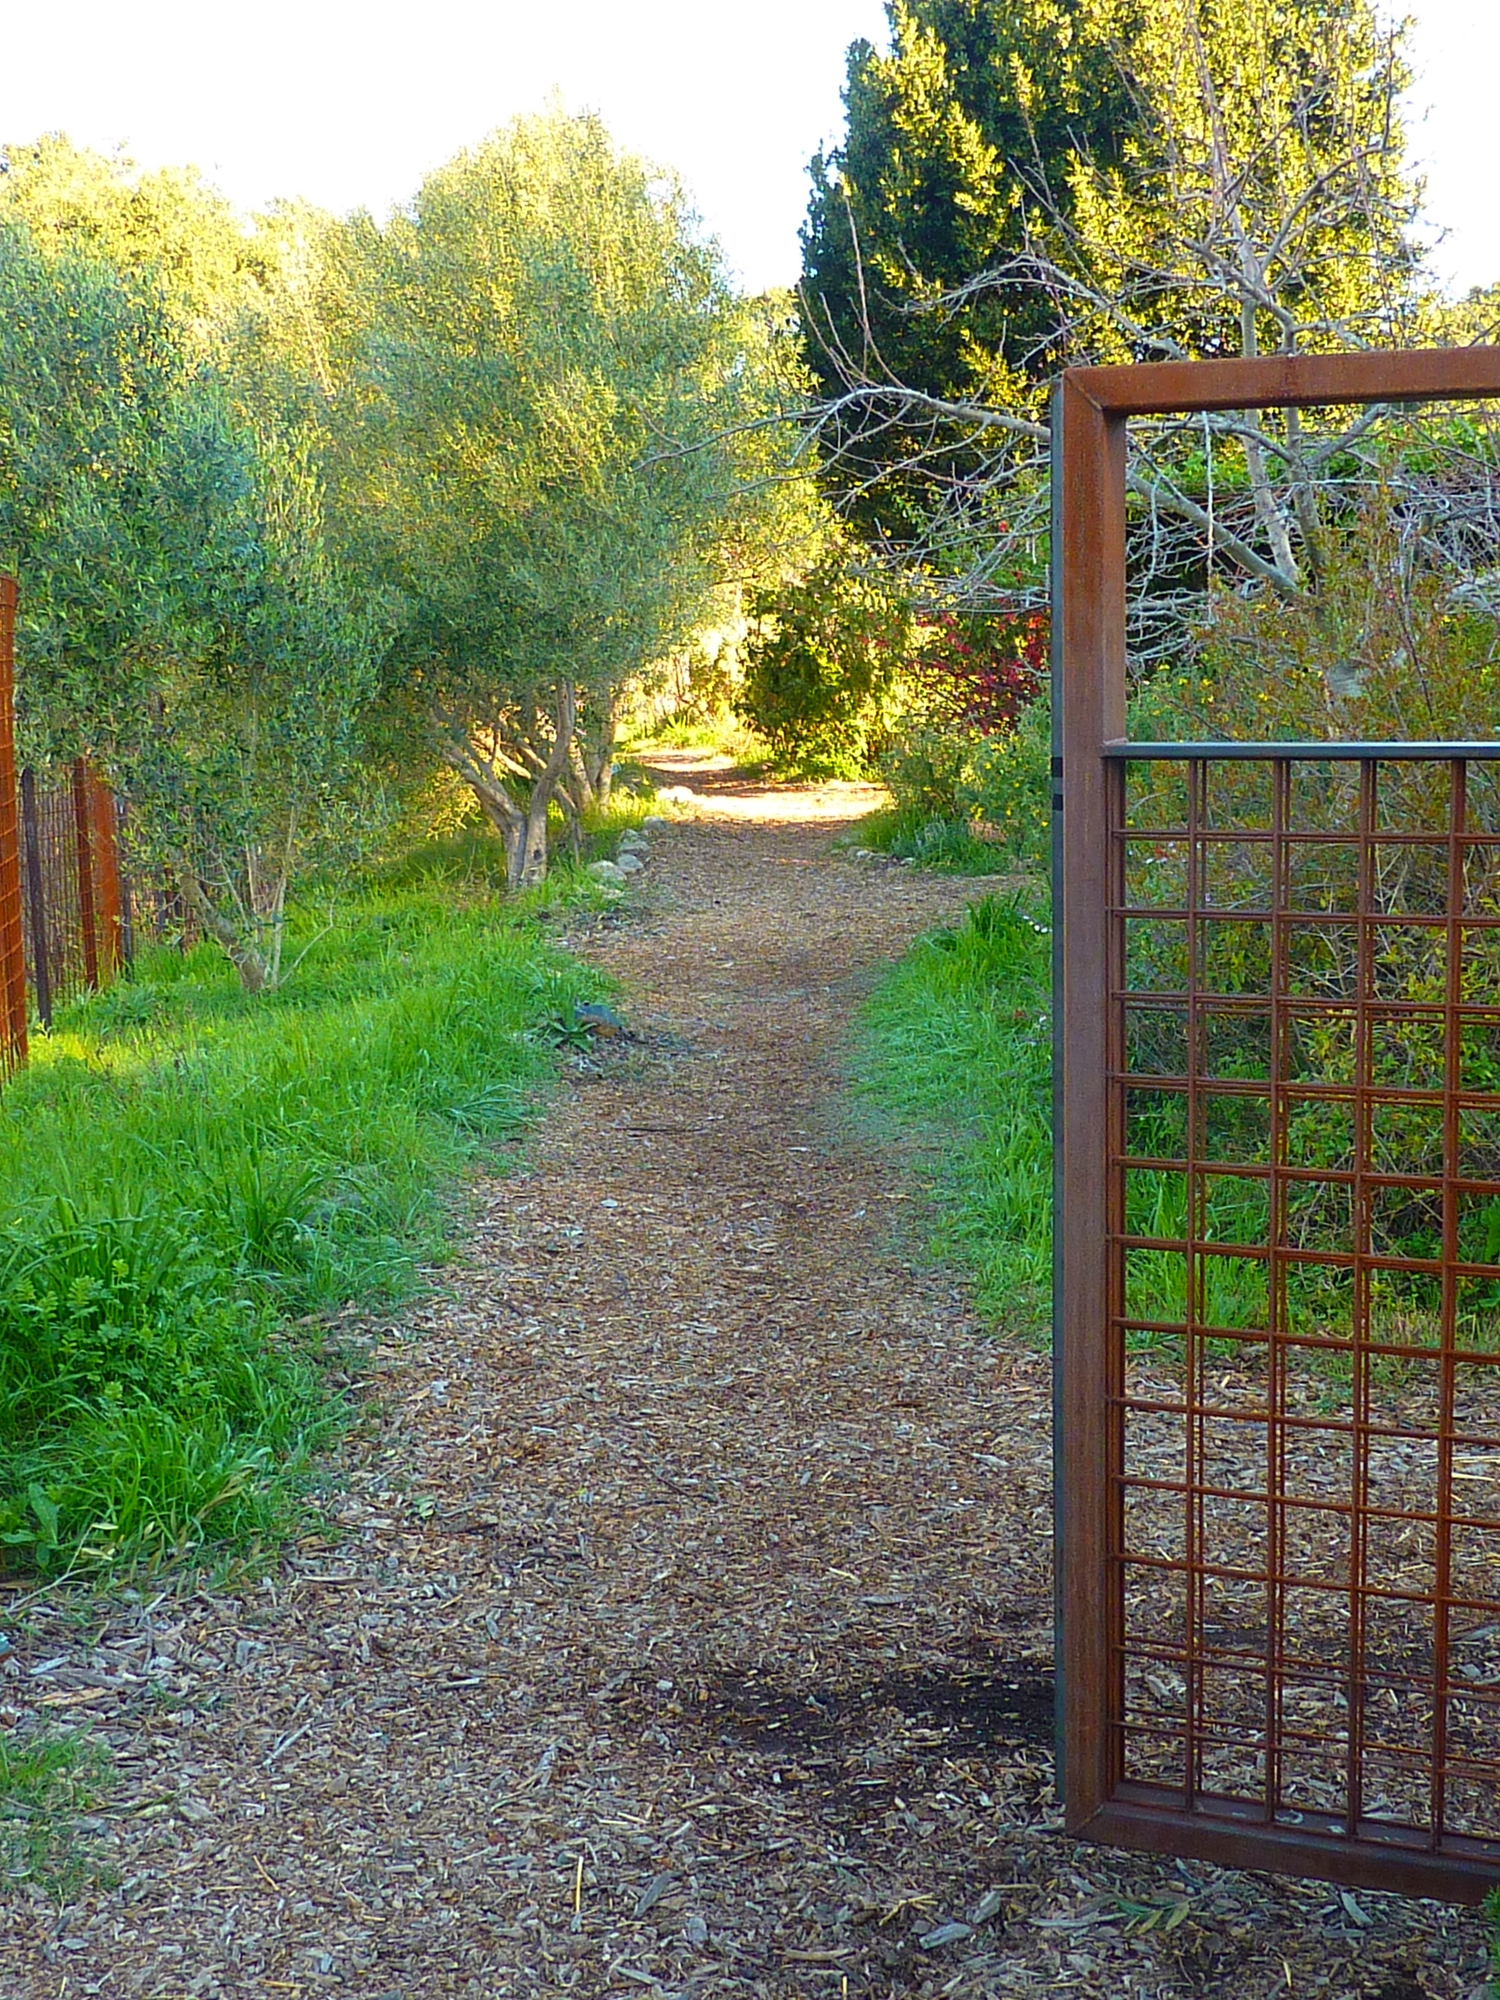 ENTRANCE TO THE EDIBLE SCHOOLYARD